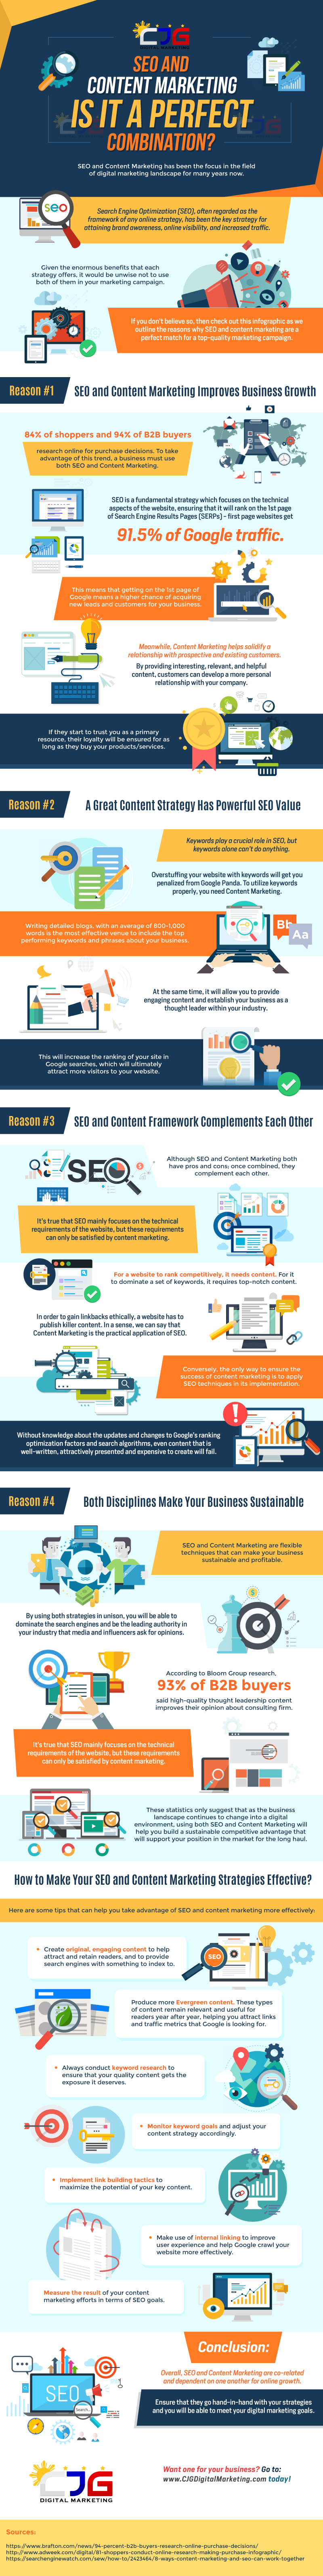 SEO and Content Marketing – the perfect combination?